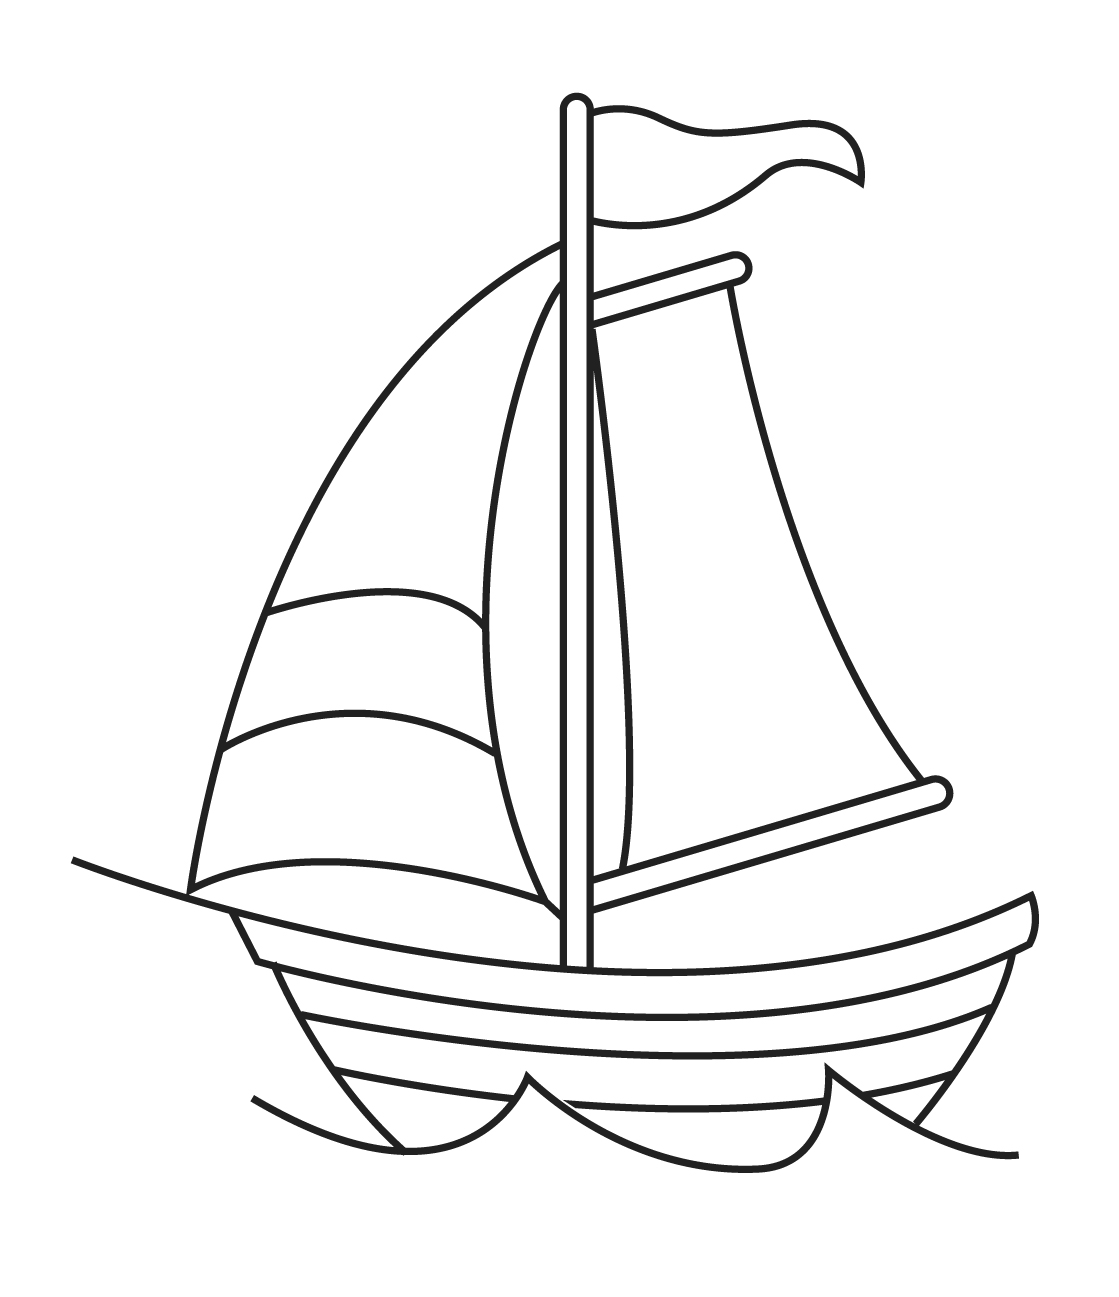 how to draw a sailboat sailboat drawing for kids free download on clipartmag a sailboat draw to how